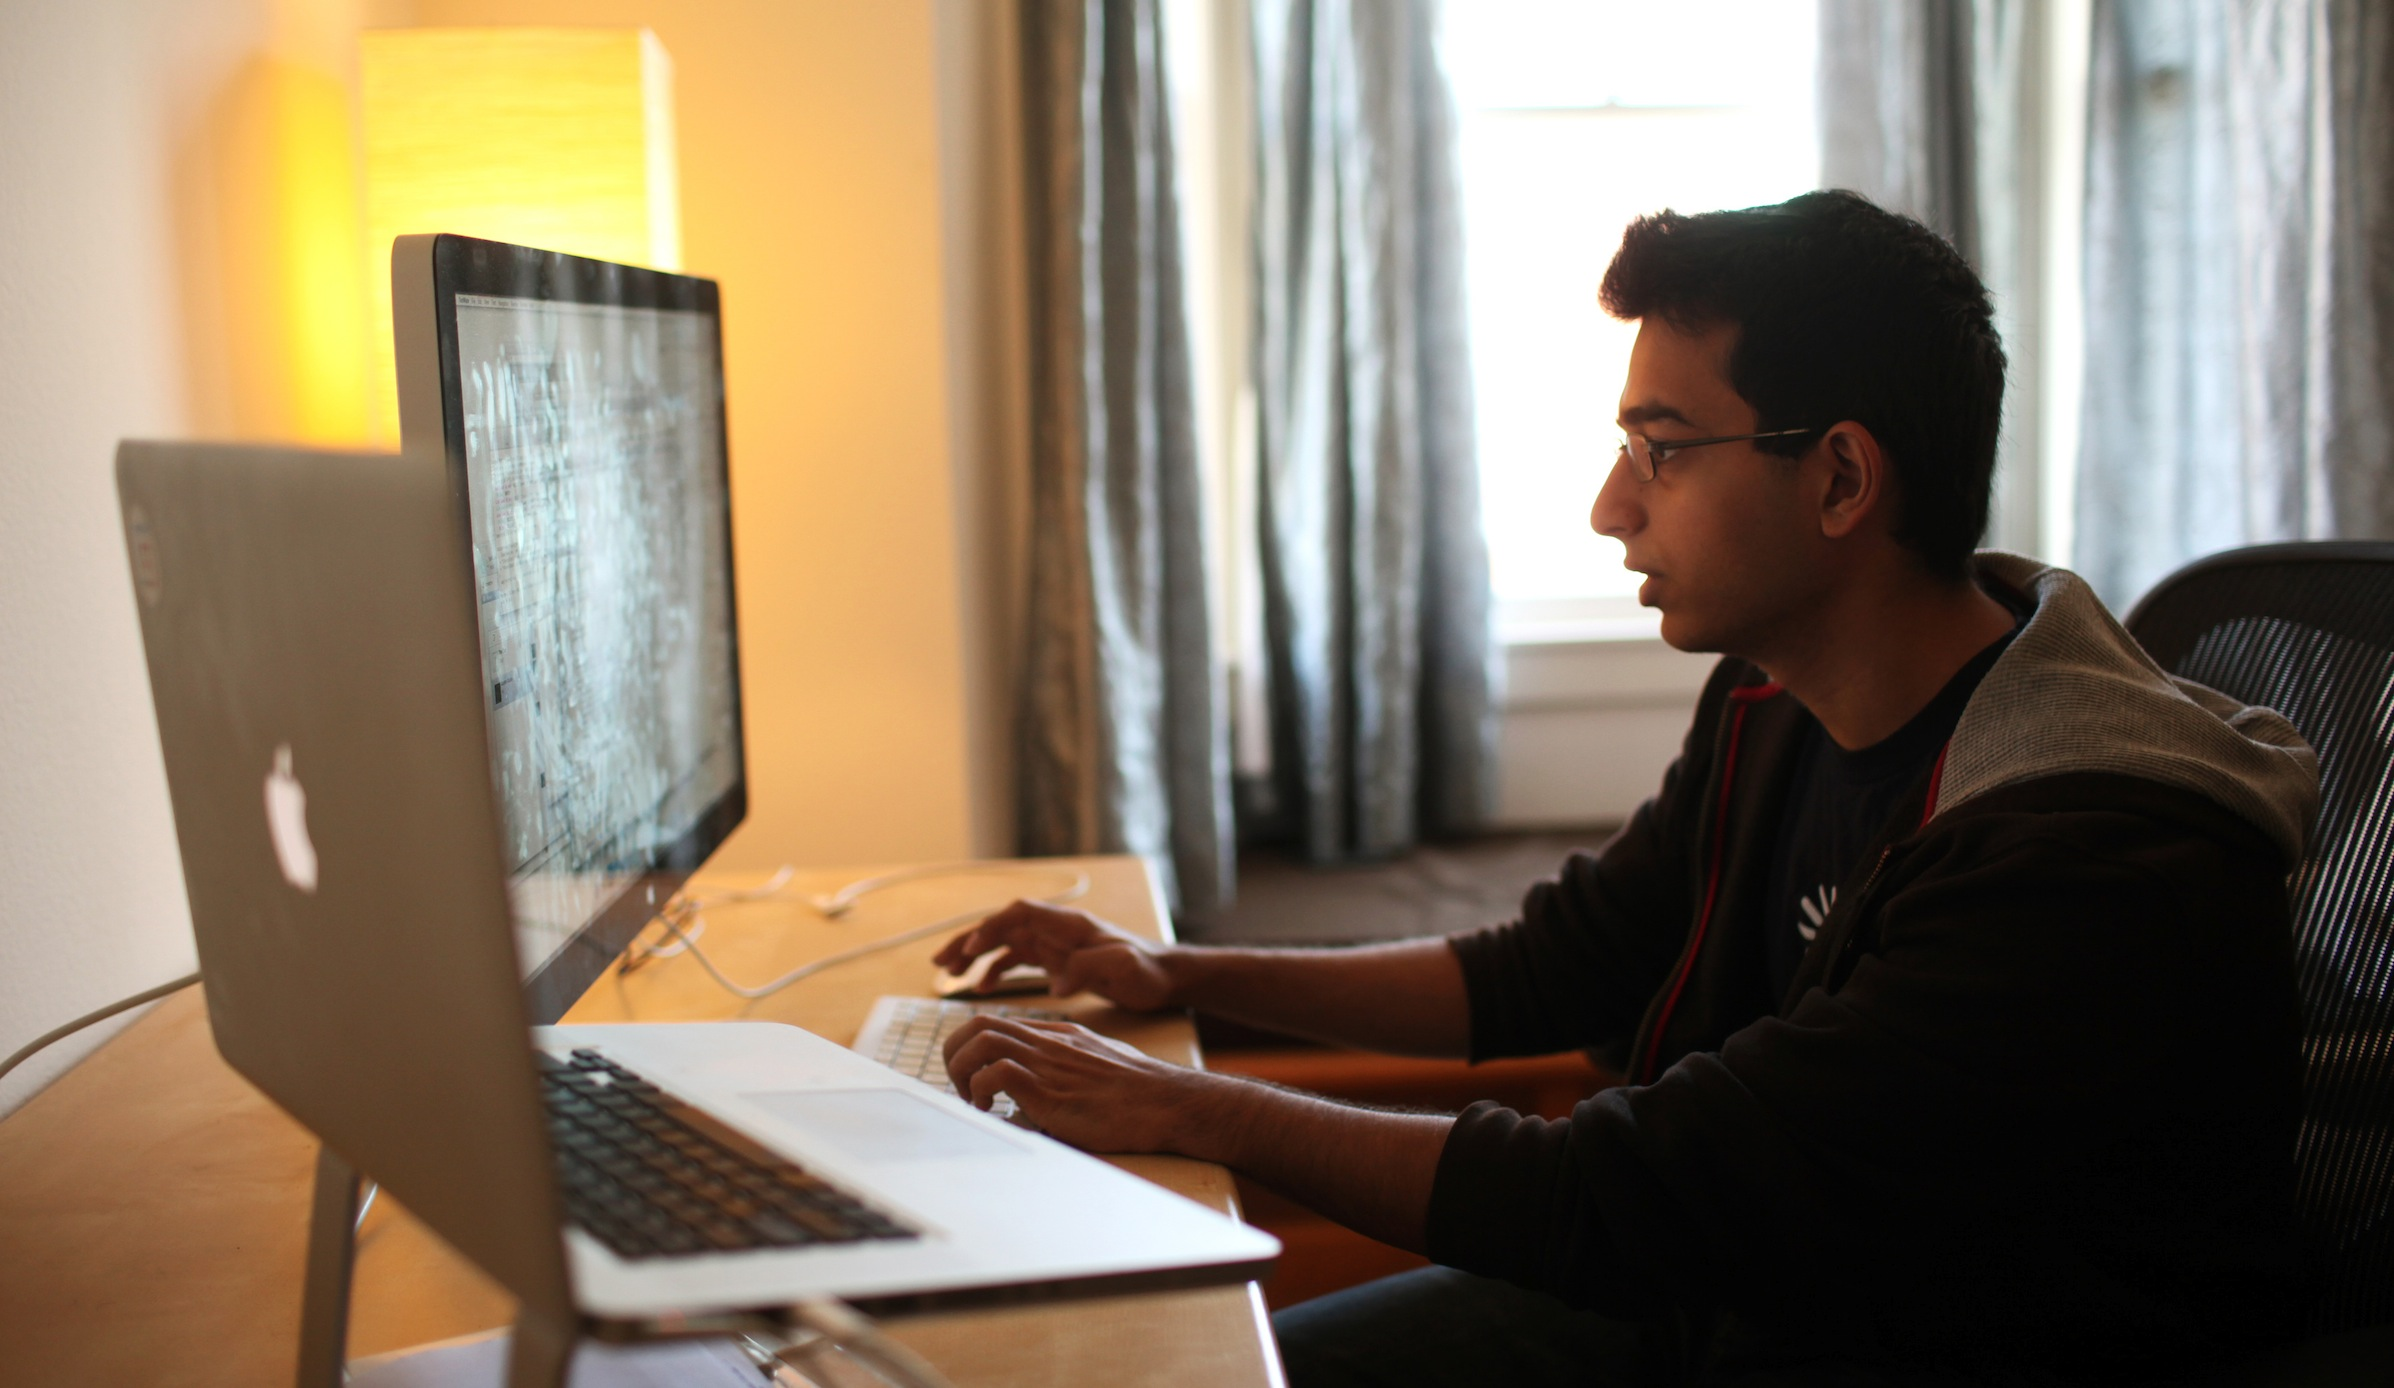 Sahil Lavingia, 19, chief executive officer (CEO) of Gumroad, an online payments company he started, works in his home which doubles as his office in the SOMA neighborhood of San Francisco February 17, 2012. Lavingia, who was born in New York and grew up in places like London, Hong Kong and Singapore, dropped out of the University of Southern California to work at online bulletin board company Pinterest. He also developed the Turntable.fm app for the iPhone. Picture taken February 17, 2012. To match Feature VENTURE/YOUNG   REUTERS/Robert Galbraith (UNITED STATES - Tags: SCIENCE TECHNOLOGY BUSINESS) - RTR2Y6KM